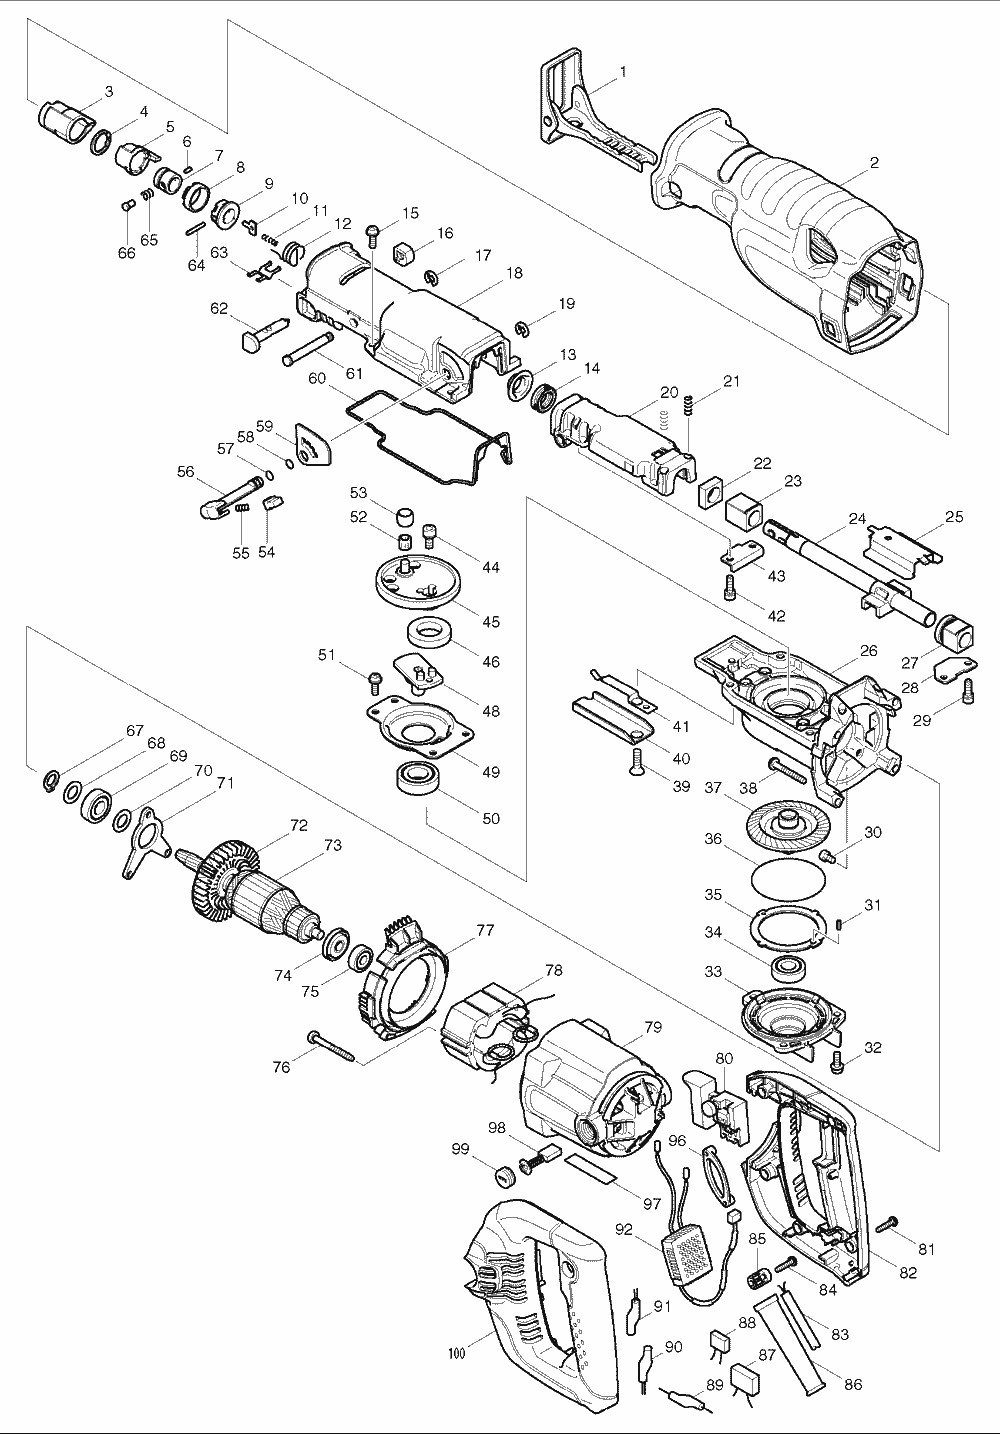 Makita Jr3000v Wiring Diagram Auto Electrical Related With